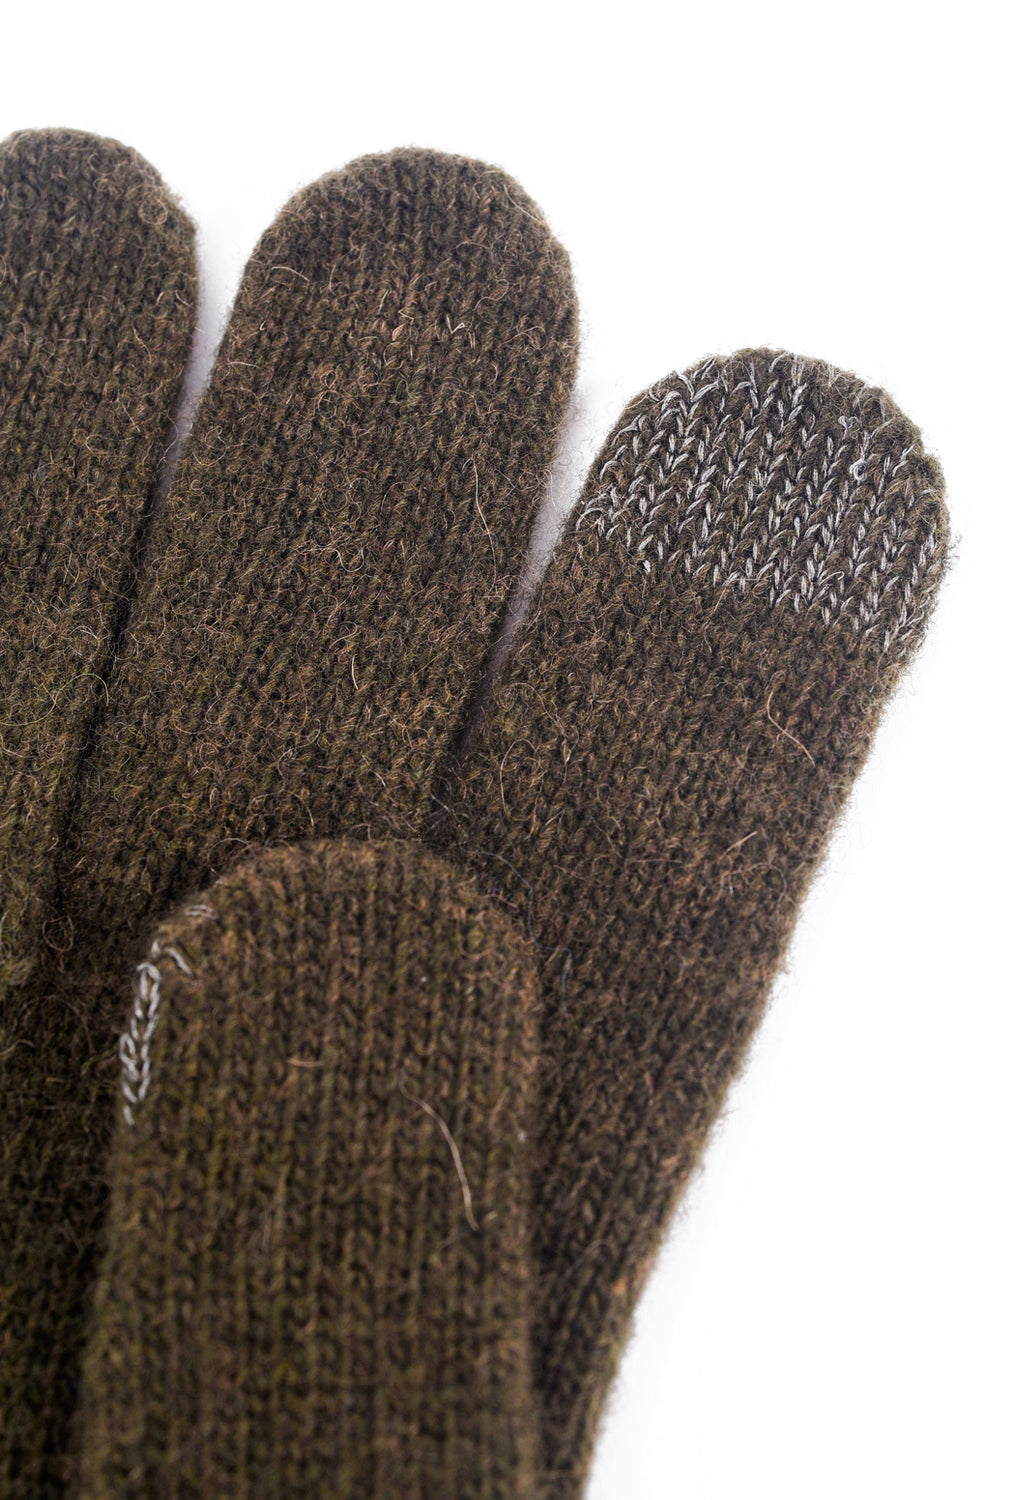 Santacana Madrid Button-Cuff Knit Gloves, Army One Size Army